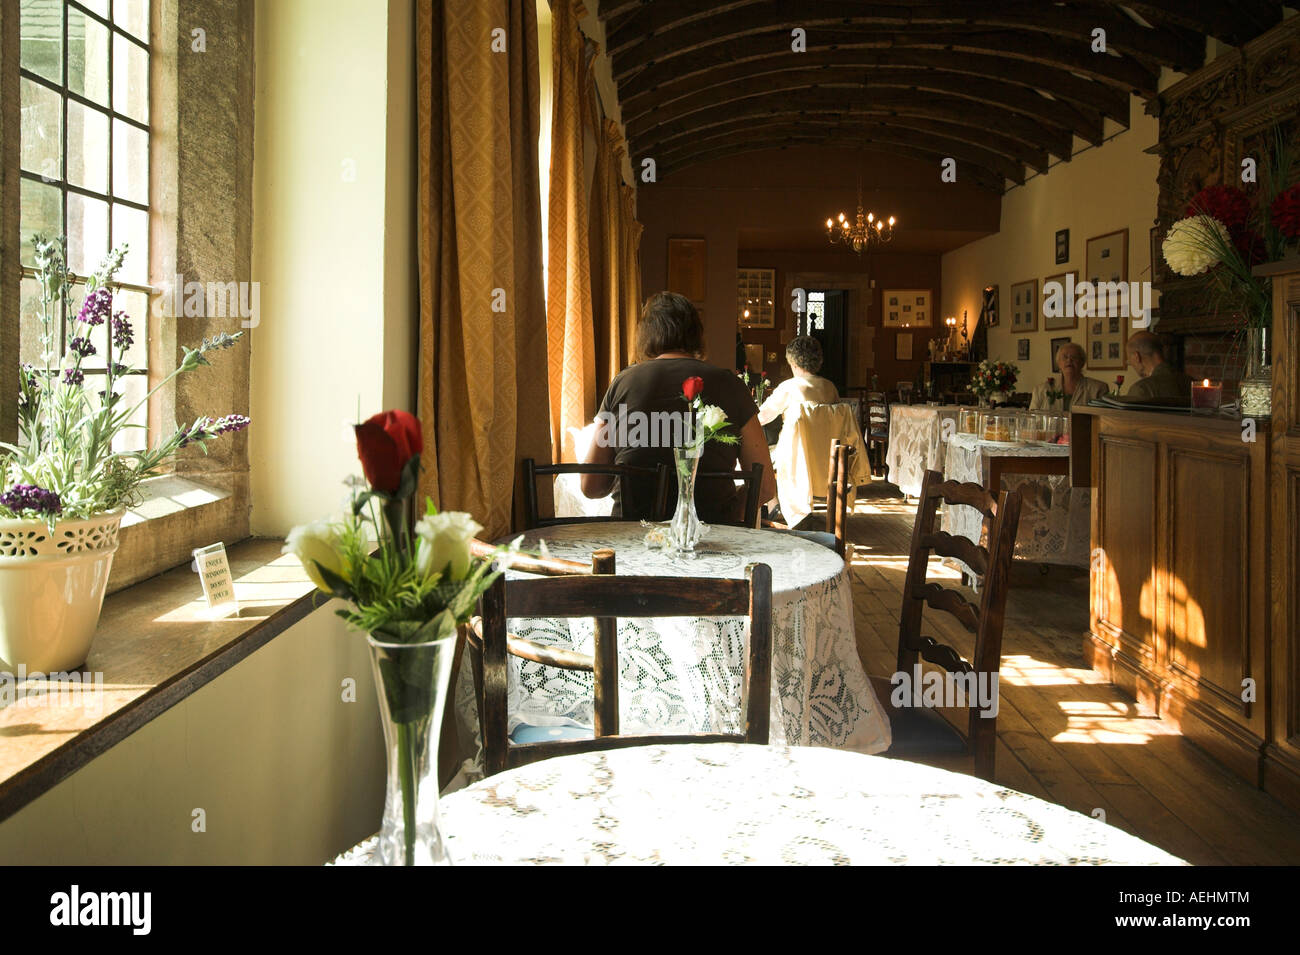 Tabley House tea rooms, Knutsford, Cheshire, UK - Stock Image